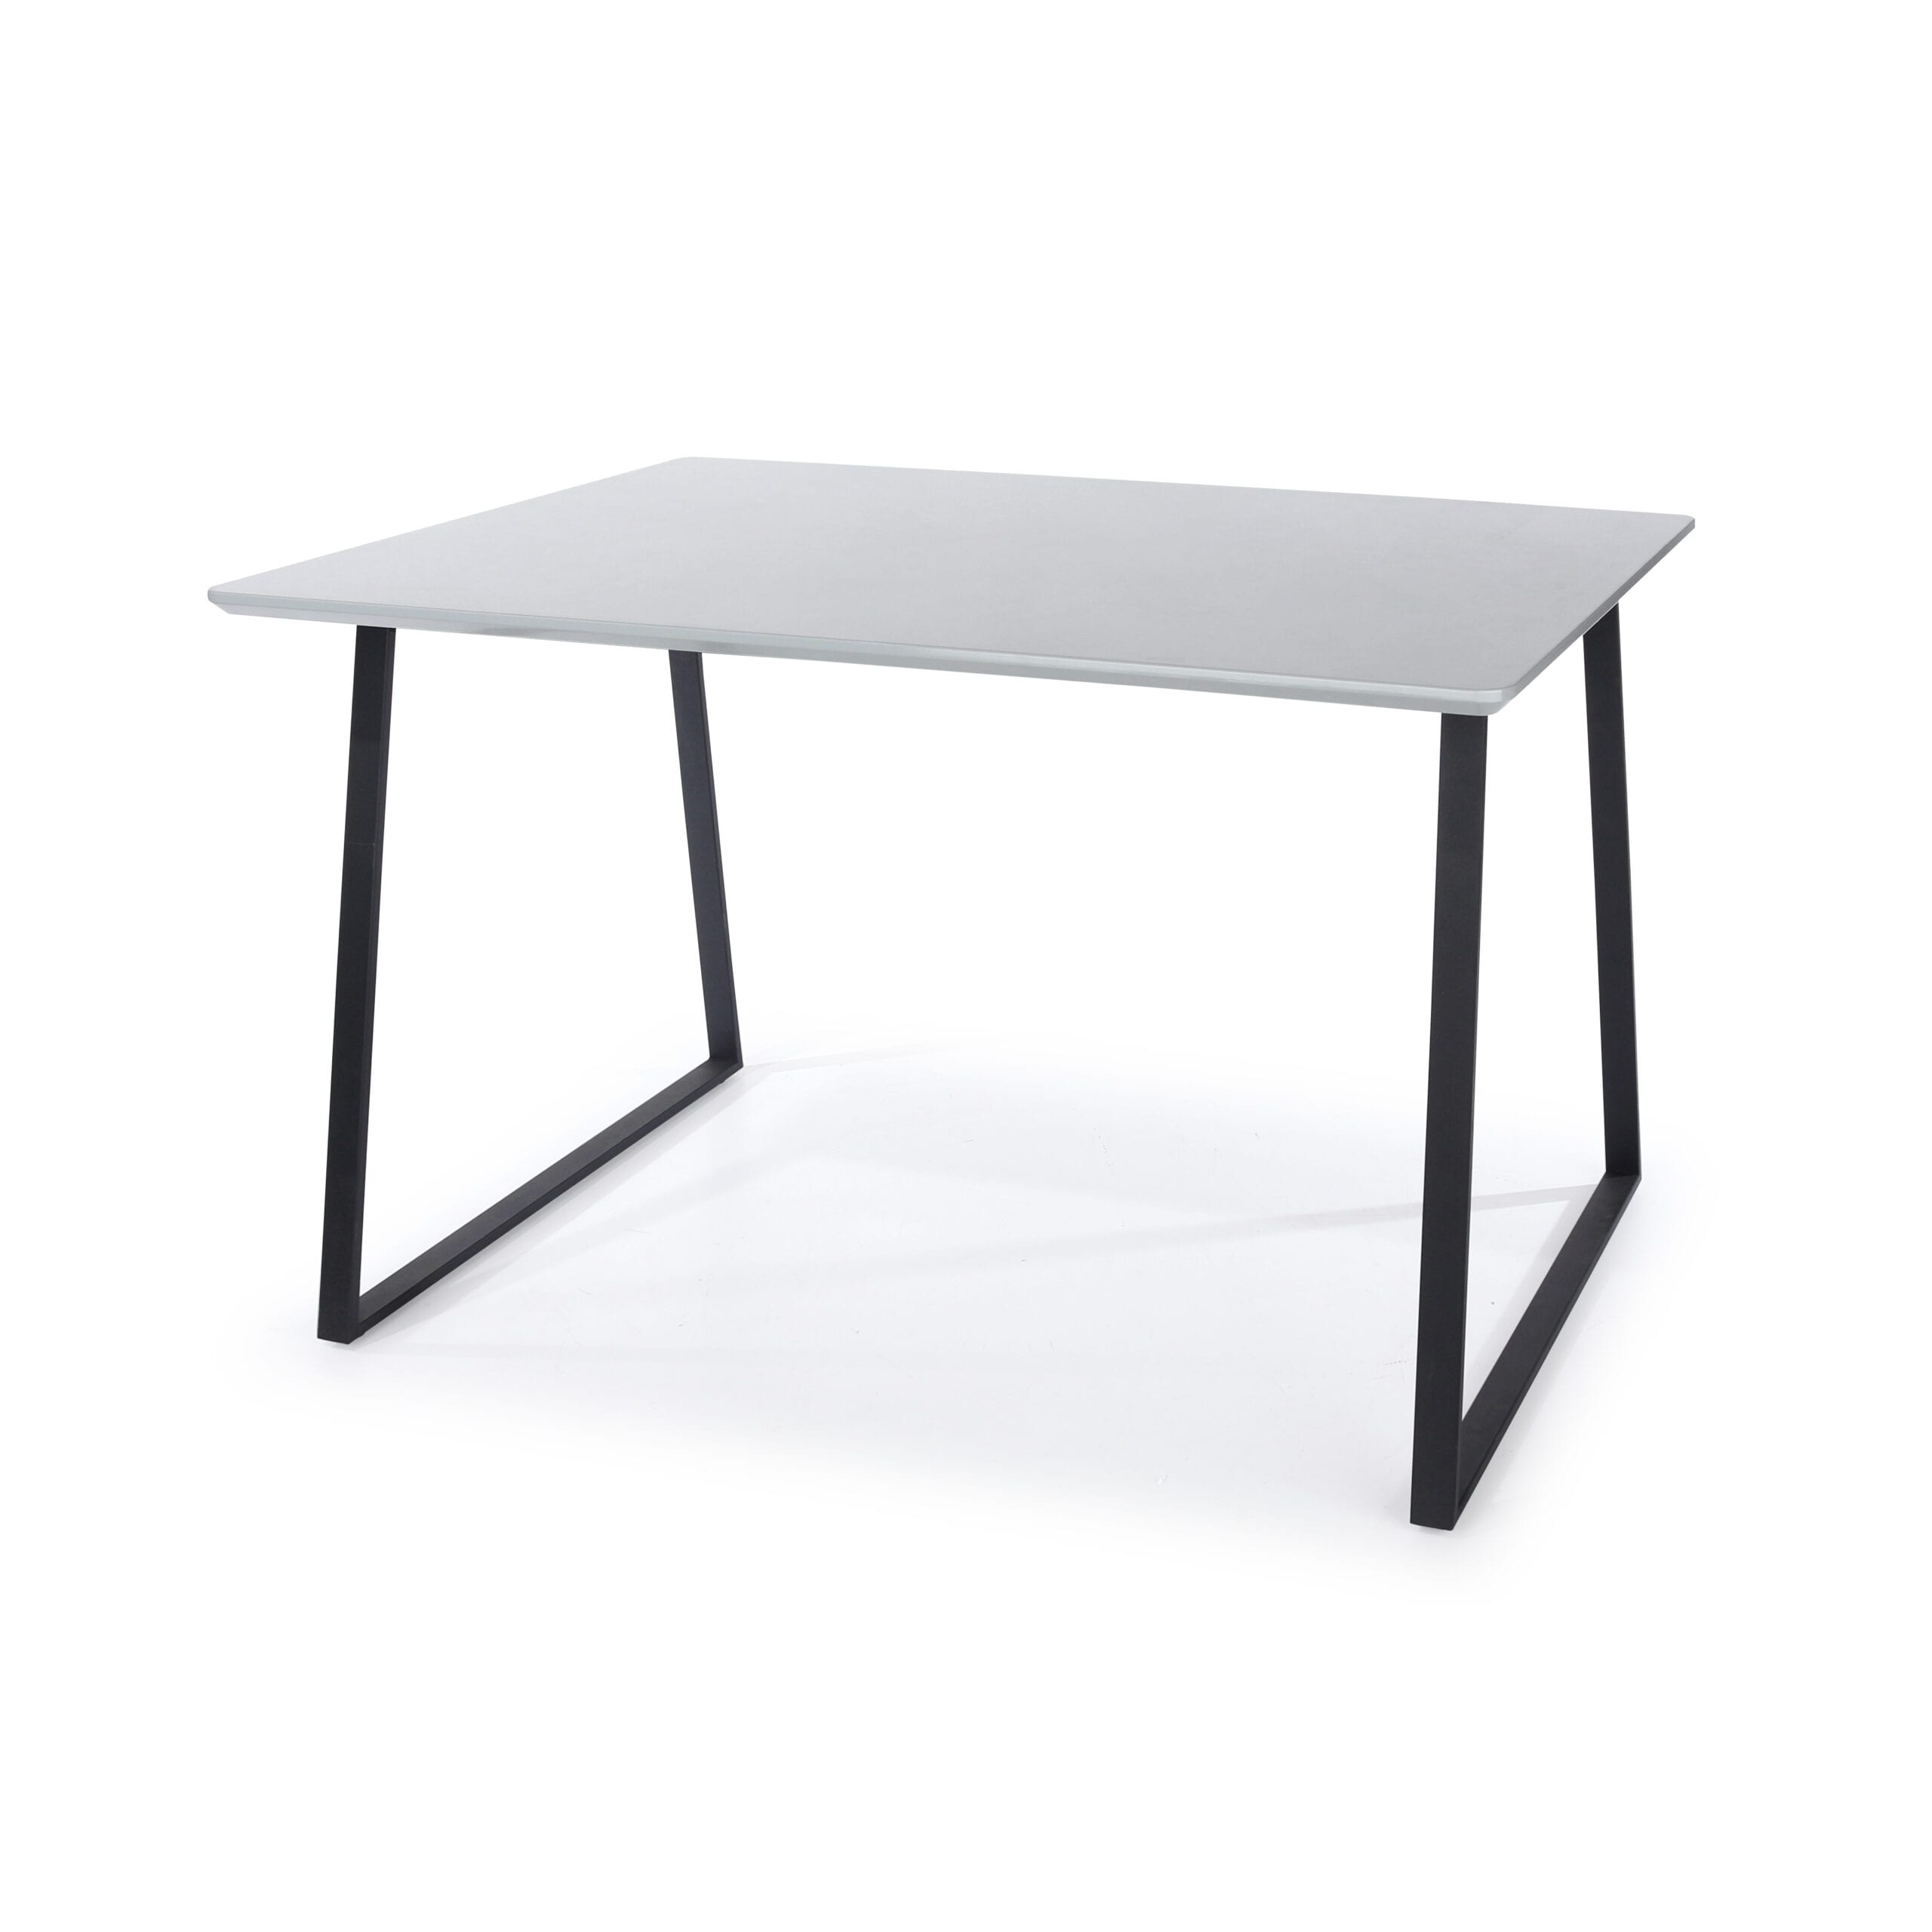 Drake rectangular table with black metal legs